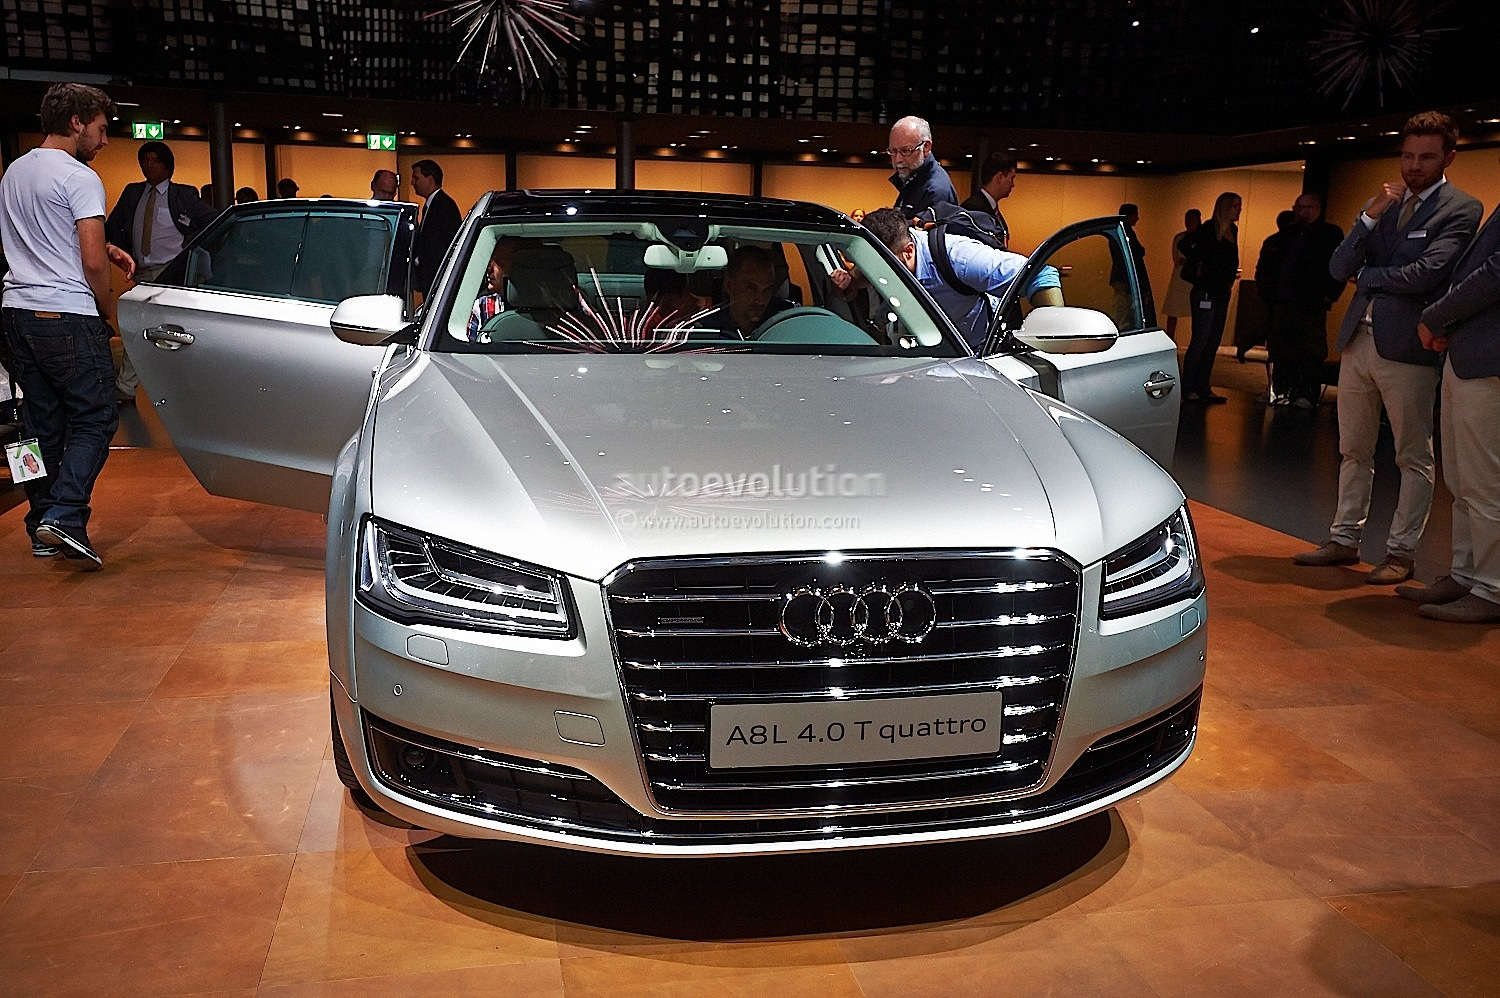 2015 audi a8 pricing and details announced autoevolution 2014 audi a8 facelift publicscrutiny Gallery